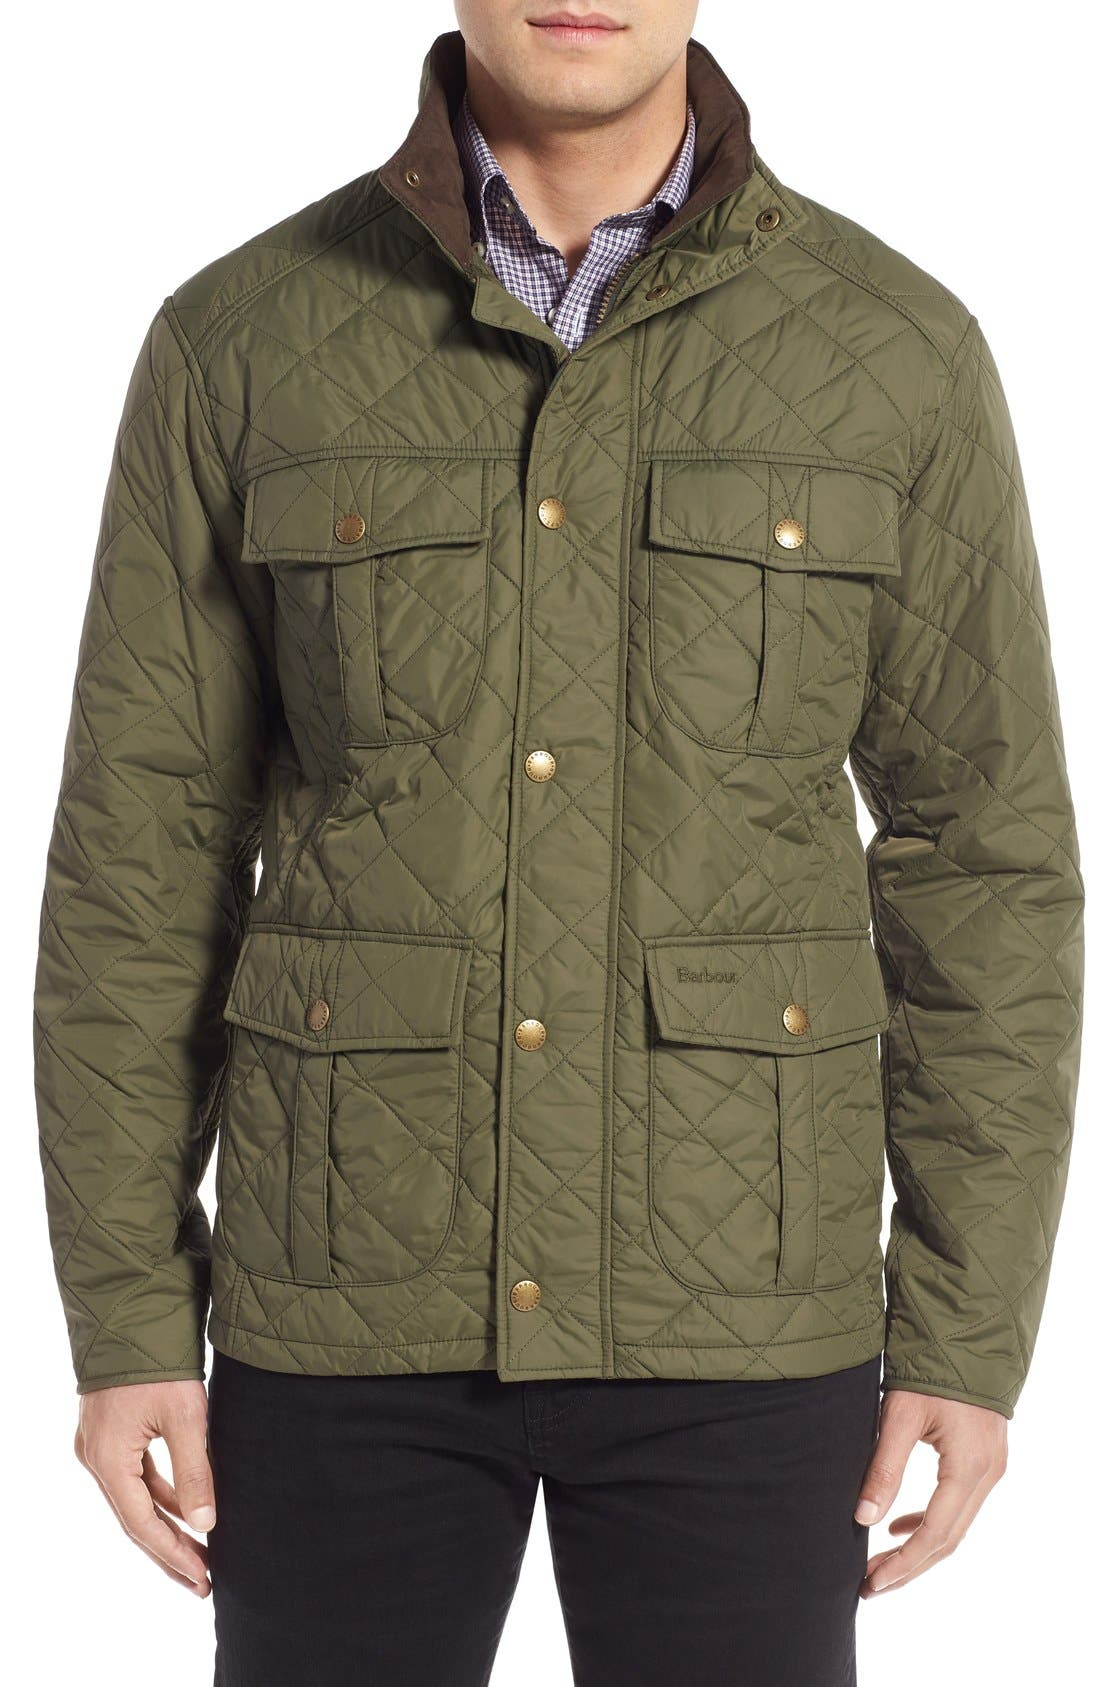 Alternate Image 1 Selected - Barbour 'Explorer' Water-Resistant Quilted Utility Jacket